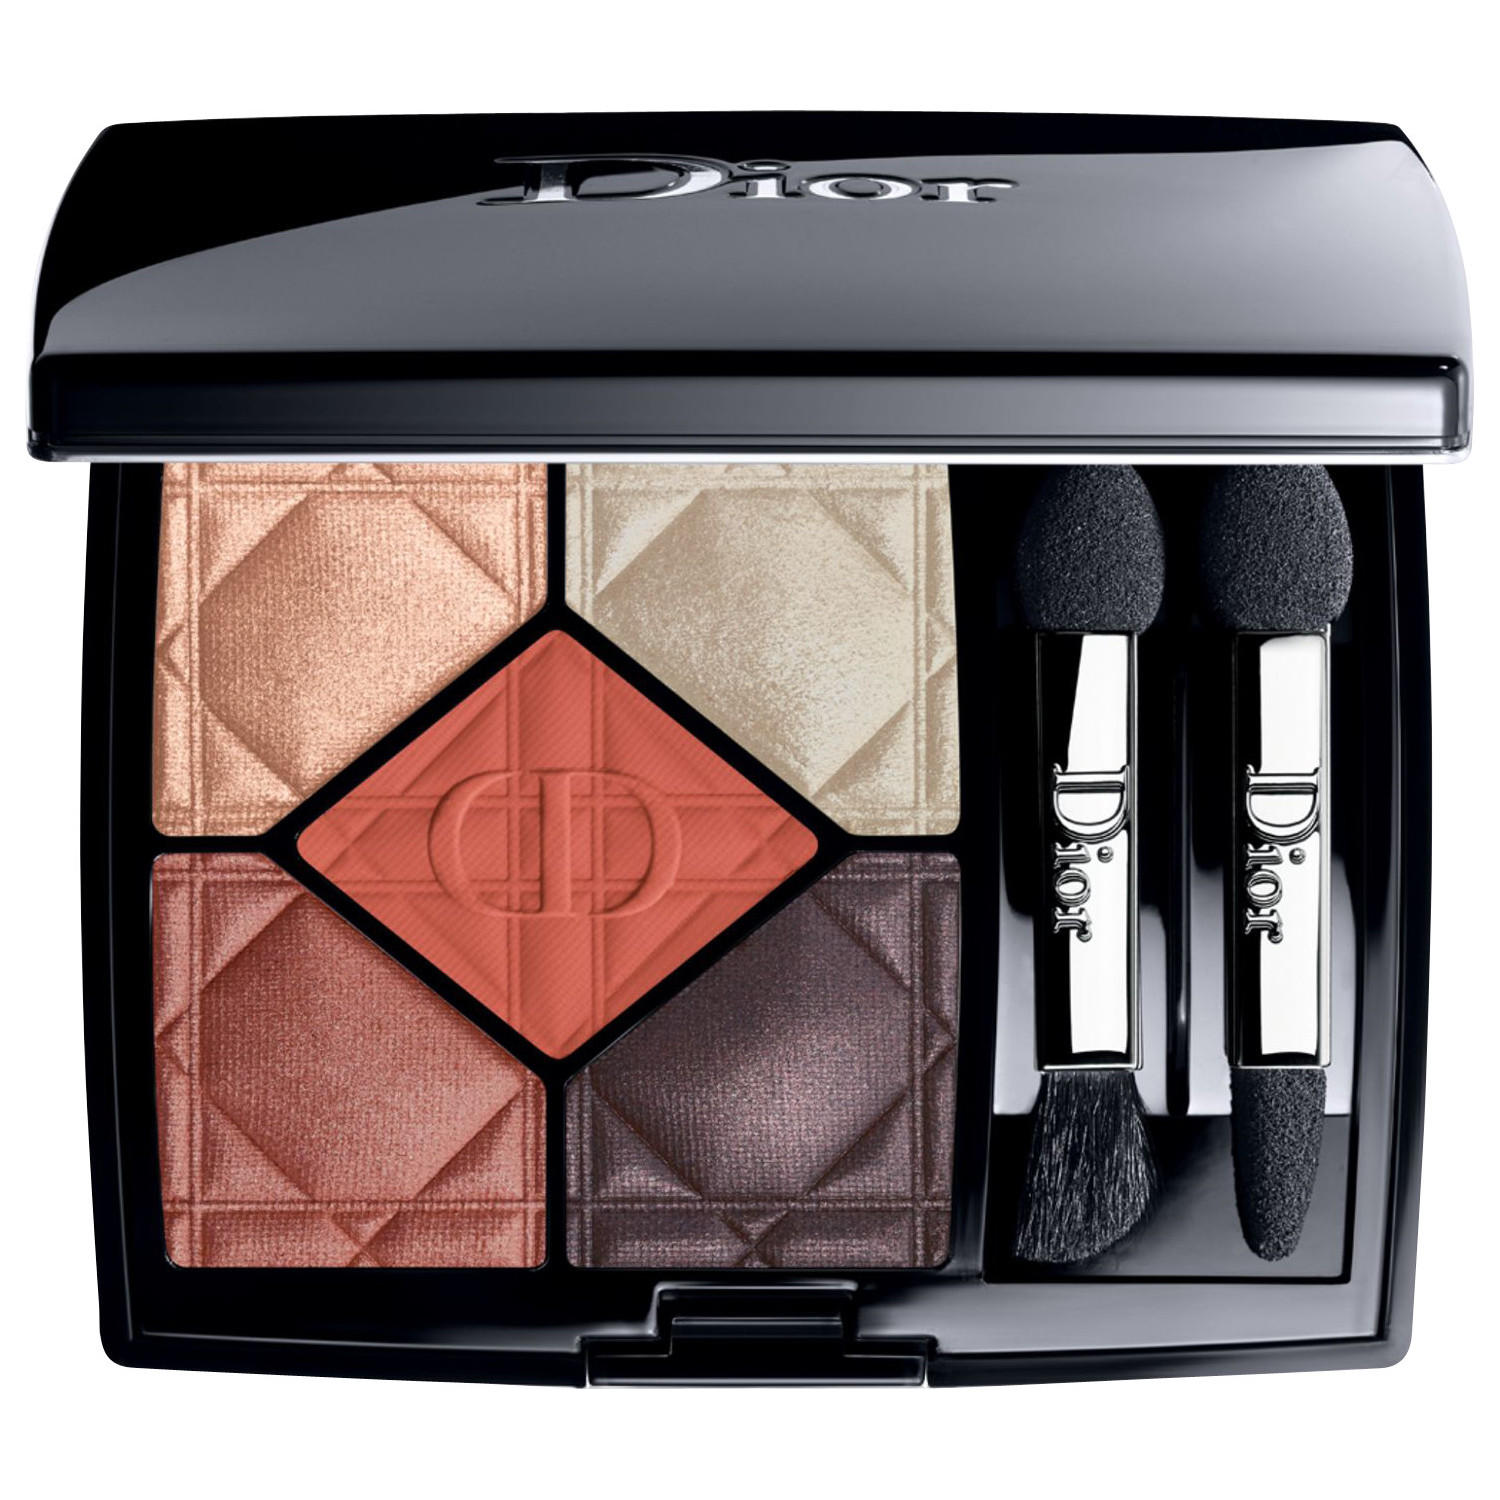 Dior 5 Couleurs High Fidelity Colours & Effects Eyeshadow Palette Inflame 767